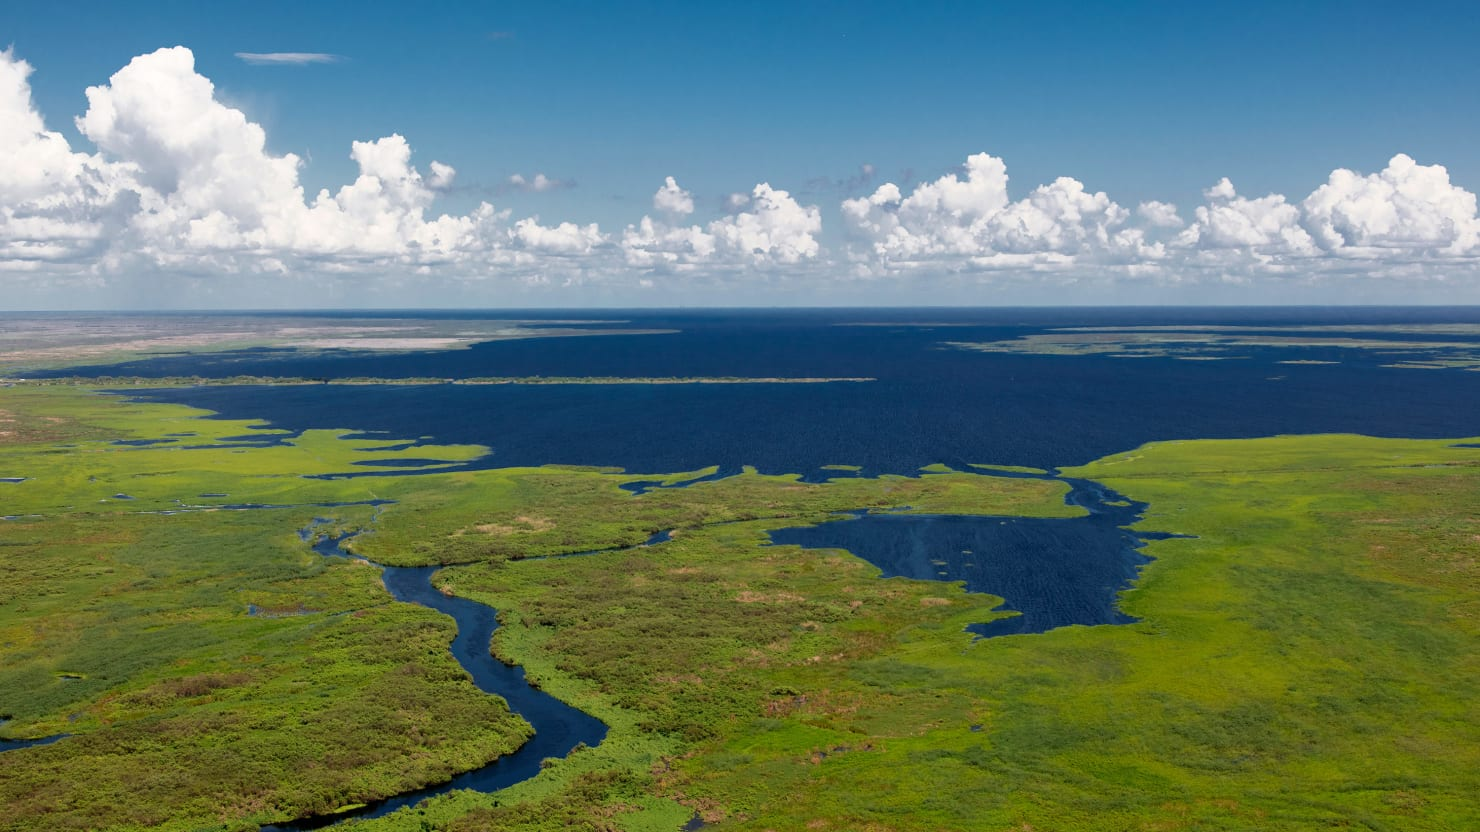 Florida's Inland Sea is One of Its Natural Wonders